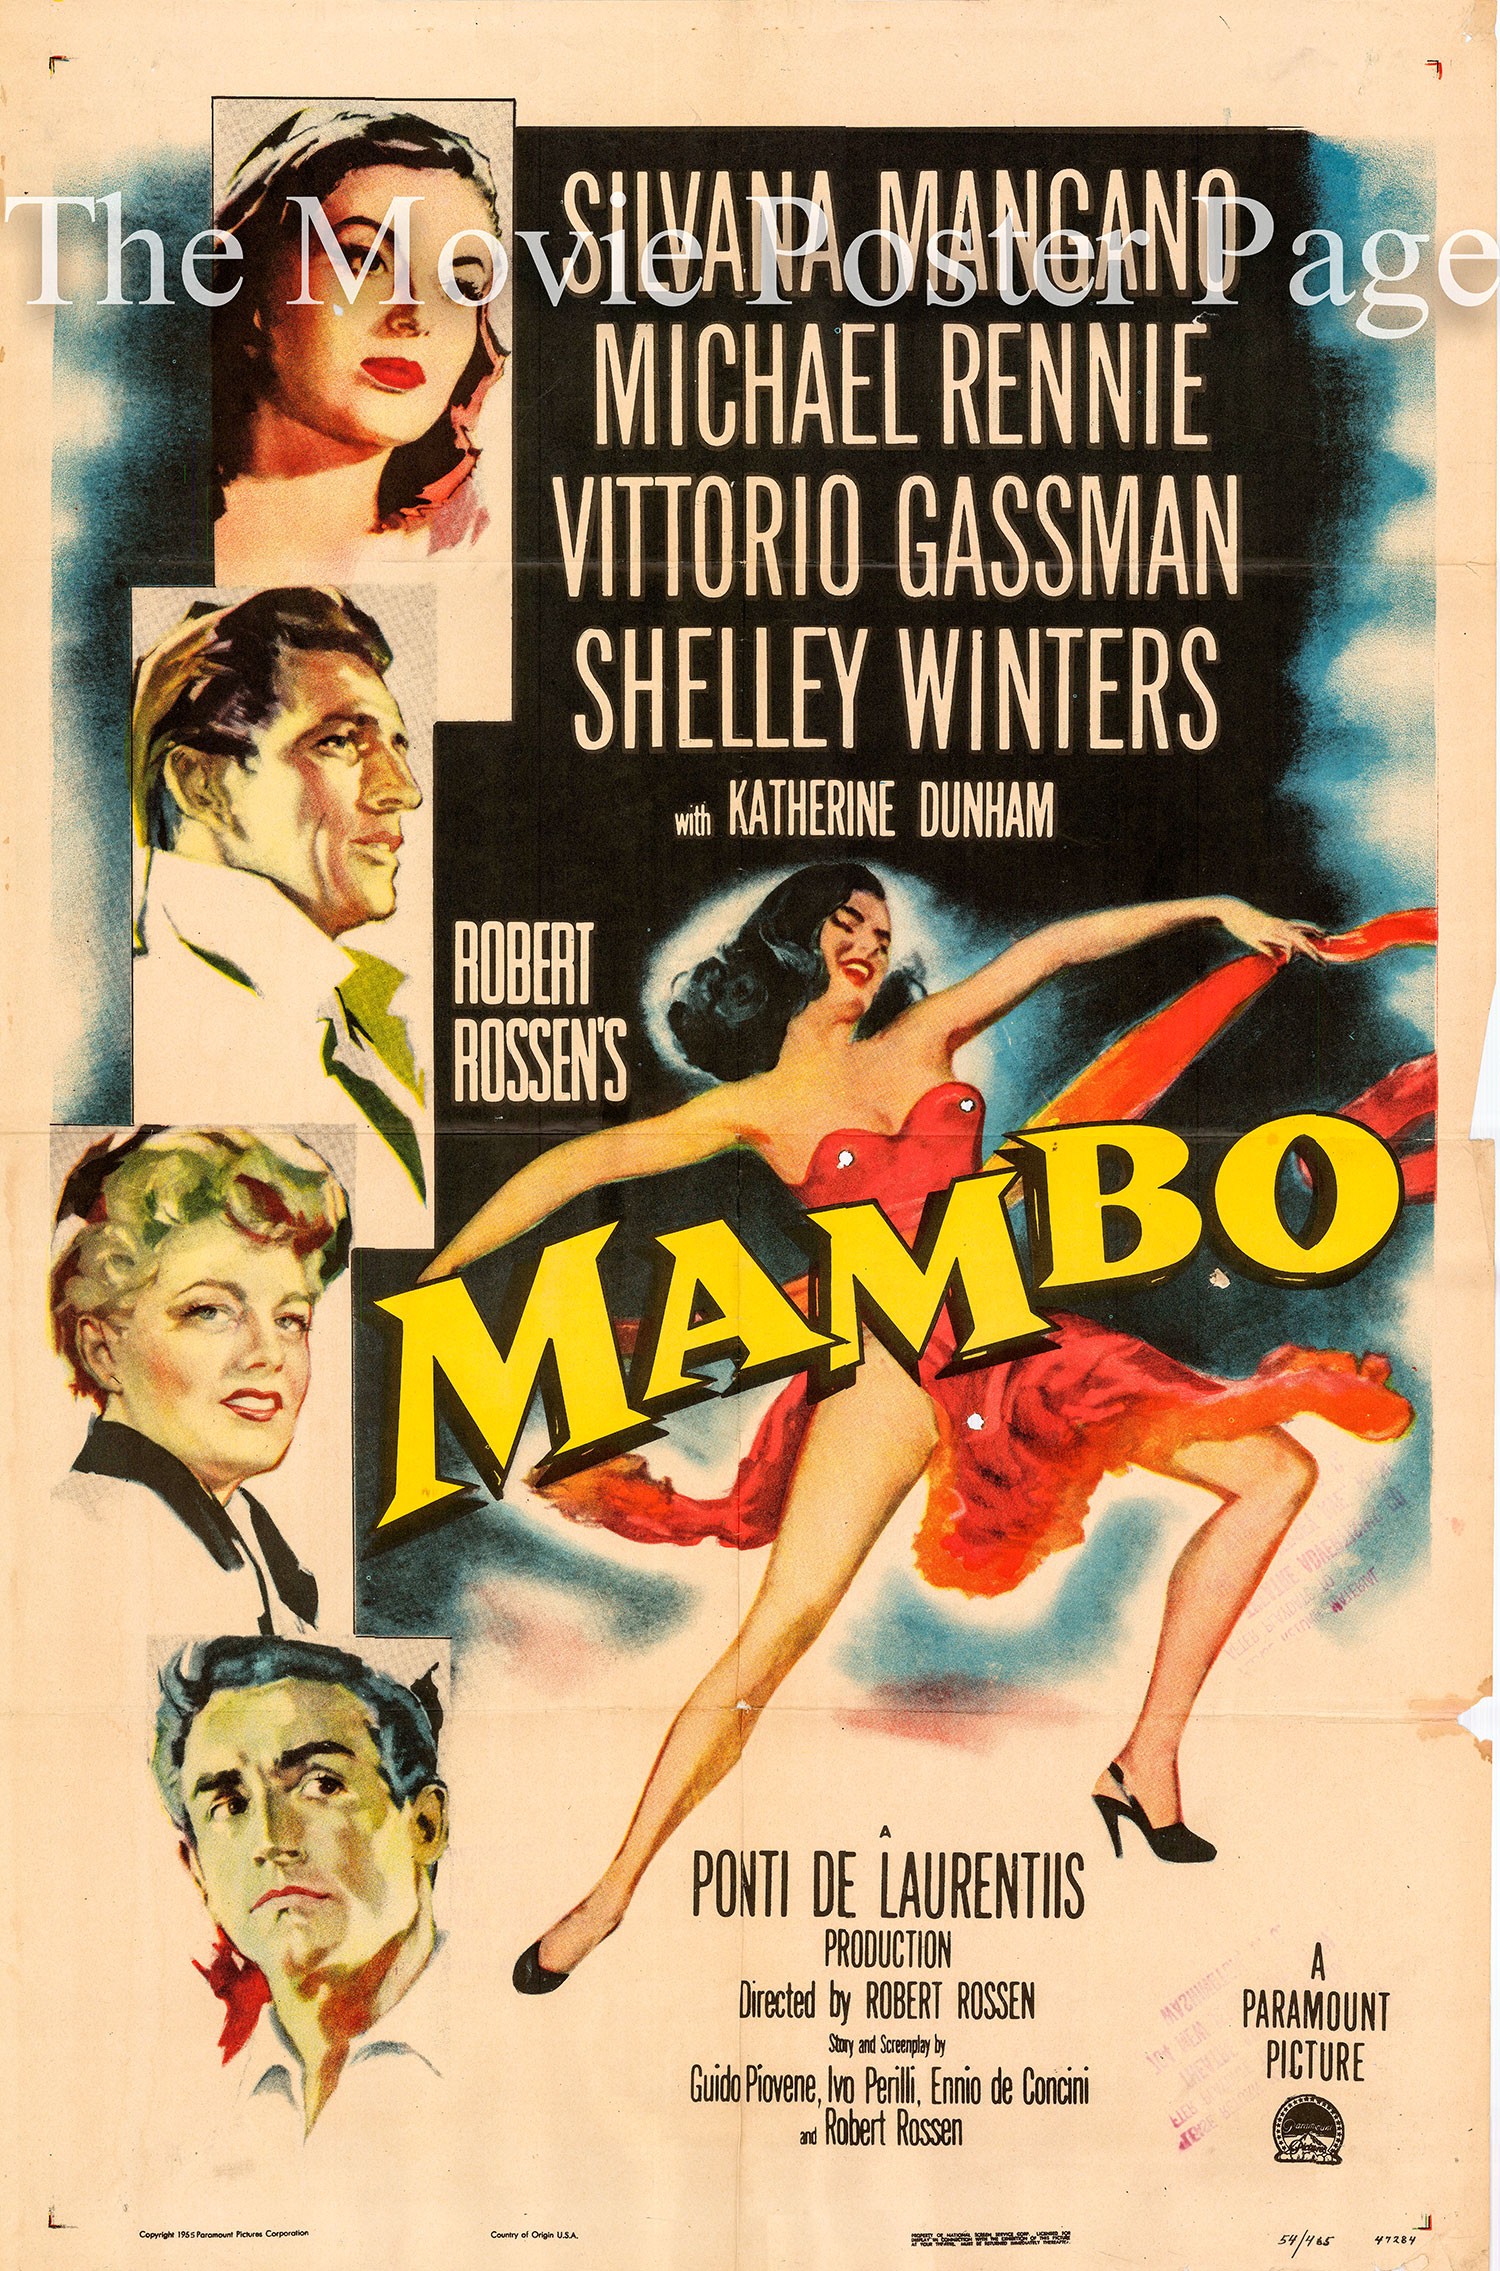 Pictured is a US one-sheet promotional poster for the 1954 Robert Rossen film Mambo starring Silvana Mangano.